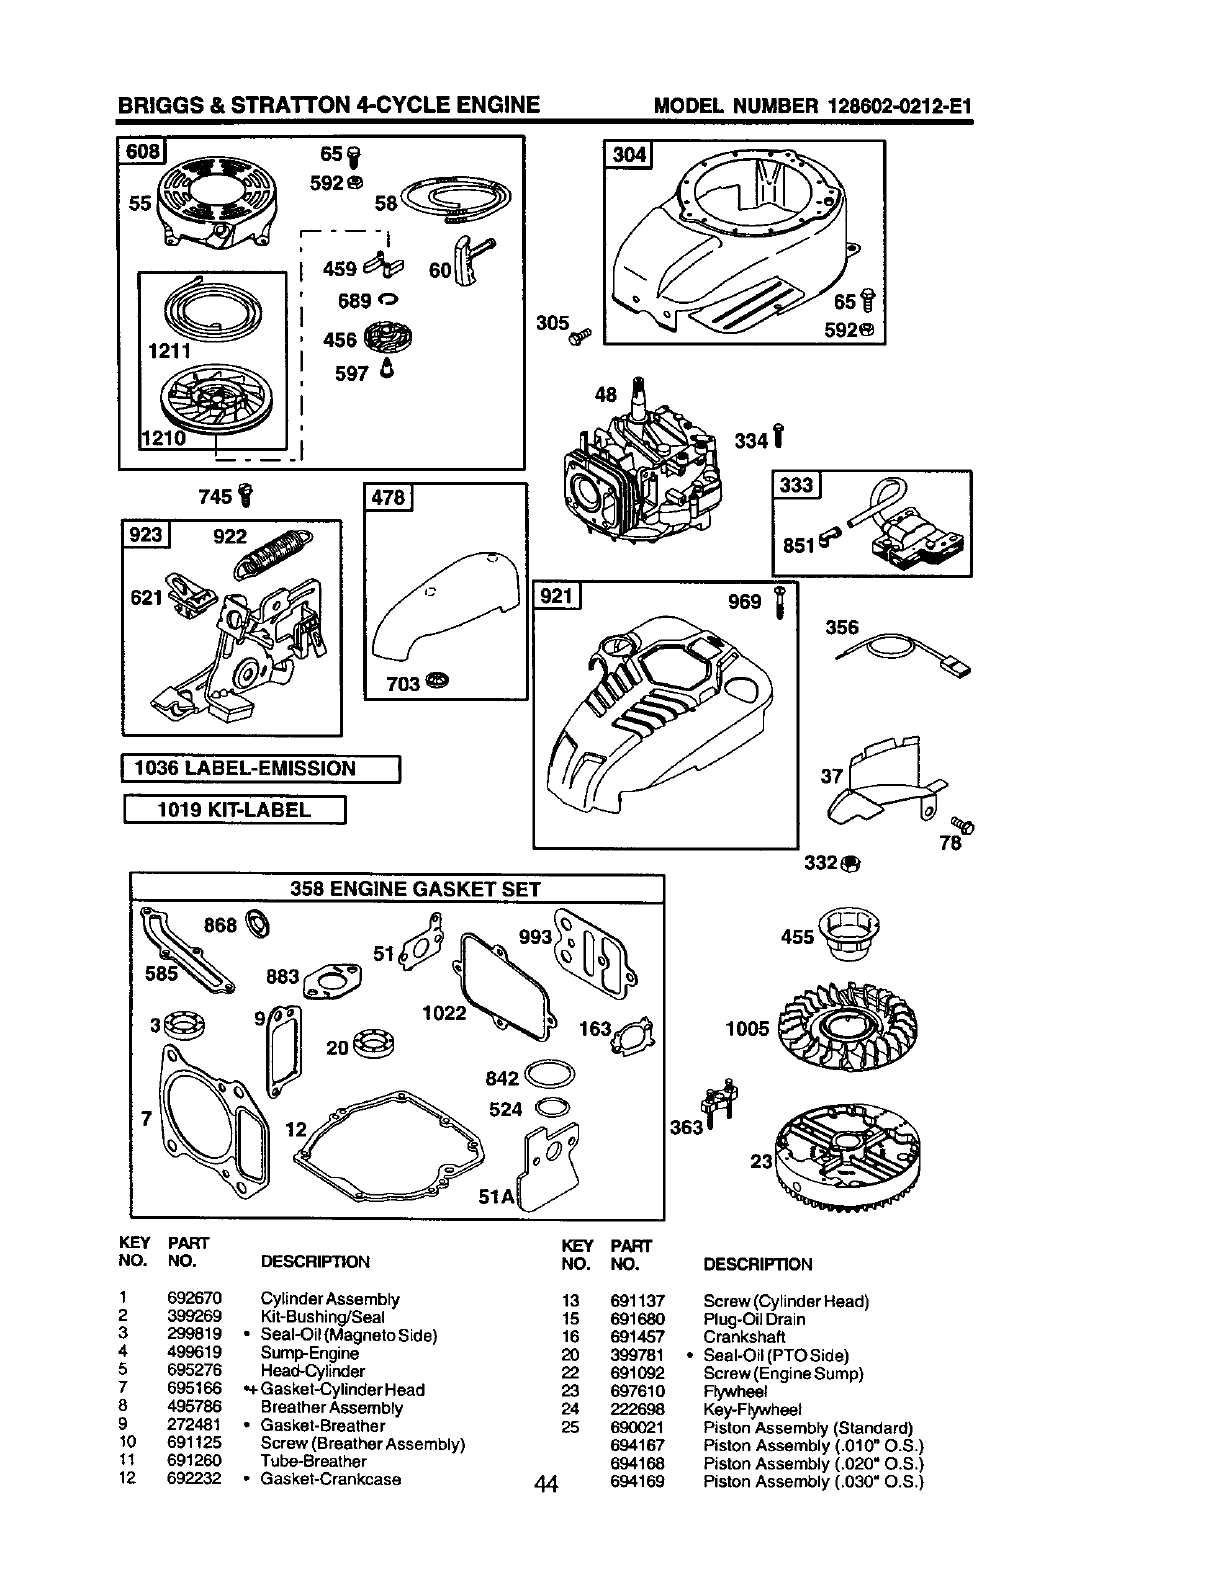 Craftsman 917378900 User Manual Gas Walk Behind Lawnmower Manuals 4 Cycle Engine Diagram Briggs Stratton 4cycle Model Number 128602 0212 E1